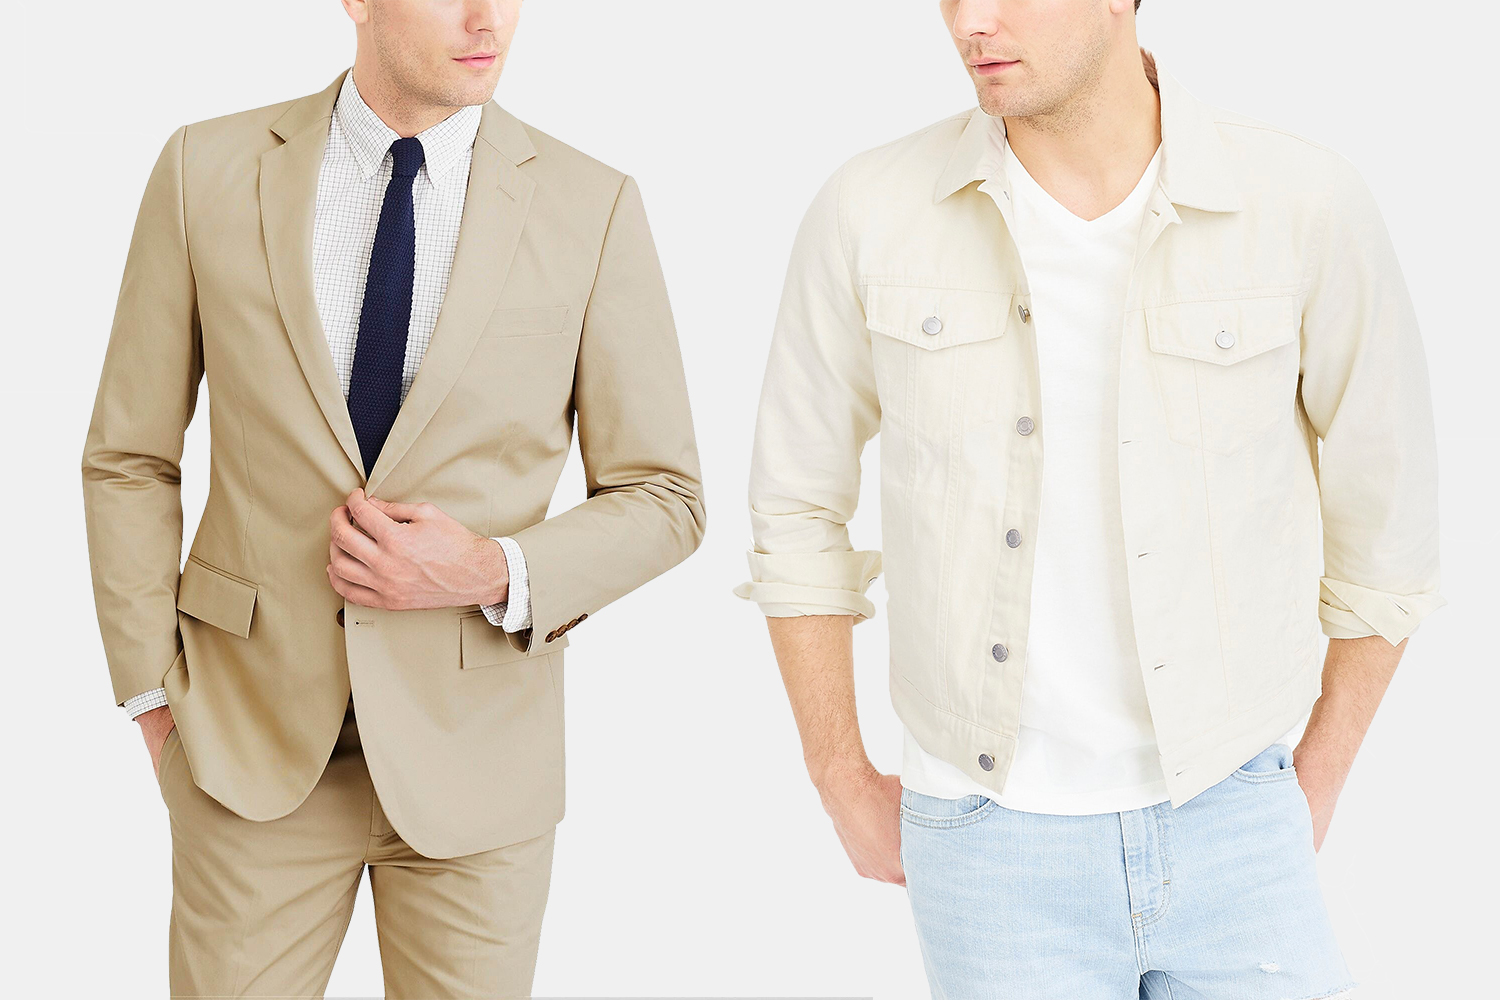 J.Crew Factory's flash sale features 70% off (almost) everything, from blazers to polos.